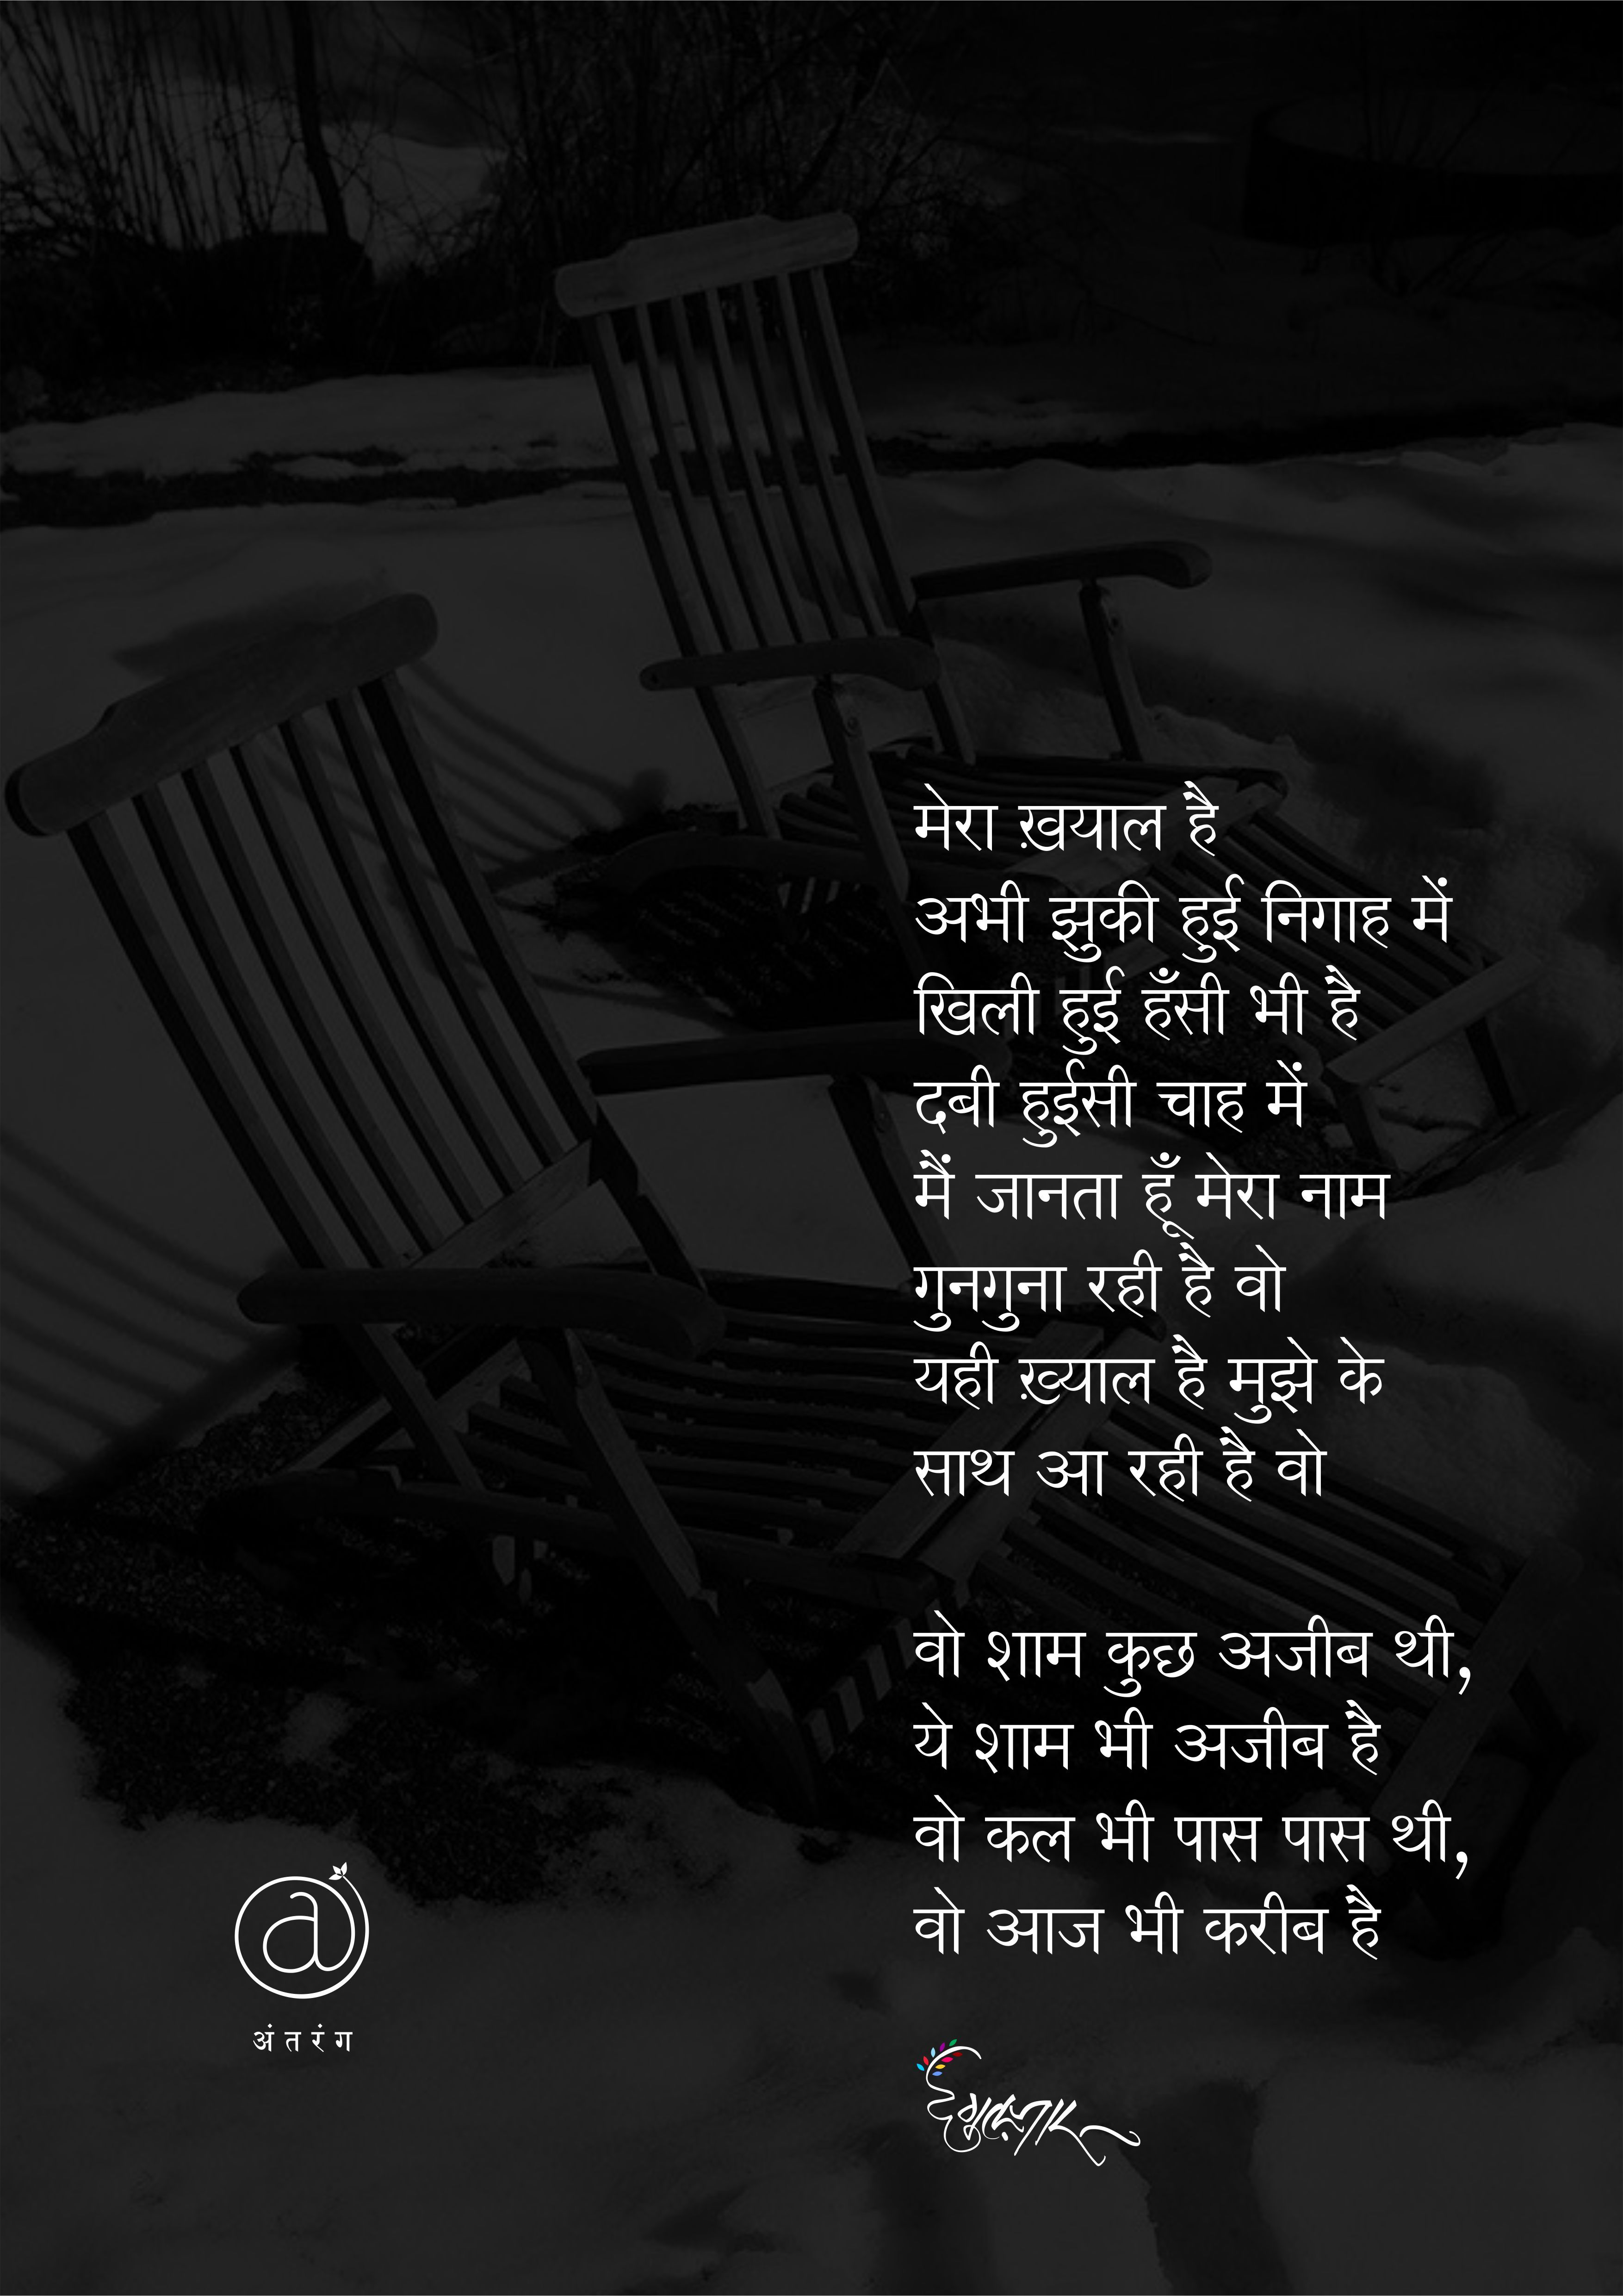 Pin By Varun Suman On Poetry Quotes Poetry Hindi Gulzar Poetry Photo Album Quote